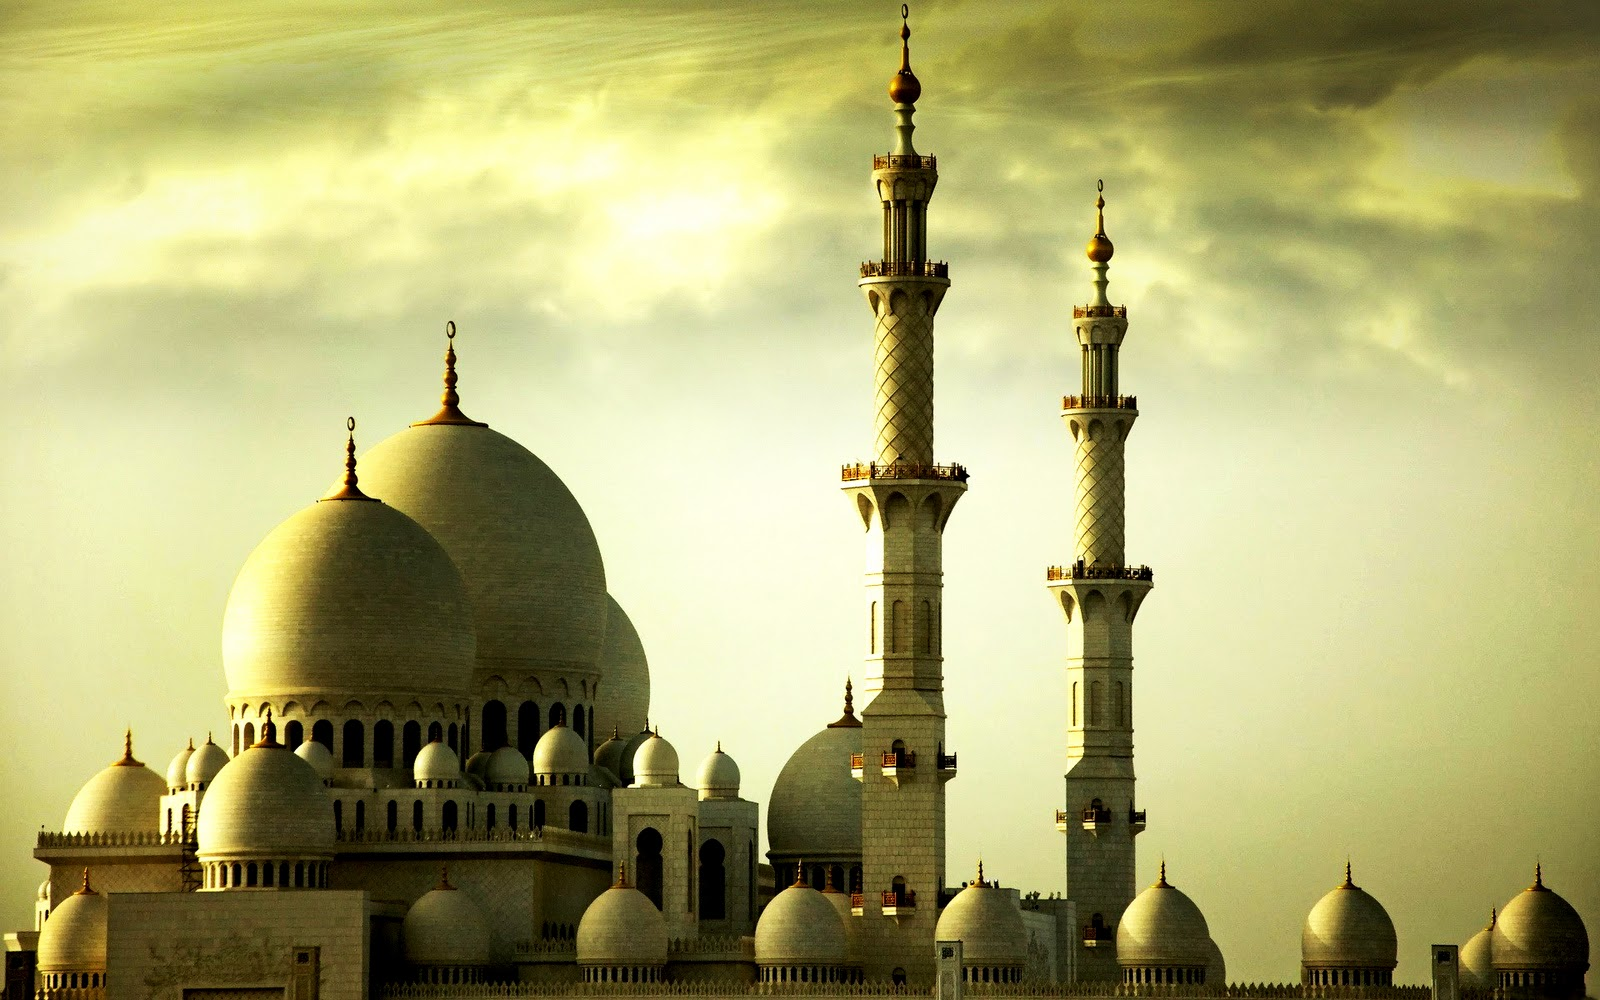 Islamic Architecture HD Mosque Wallpapers  Desktop Wallpapers